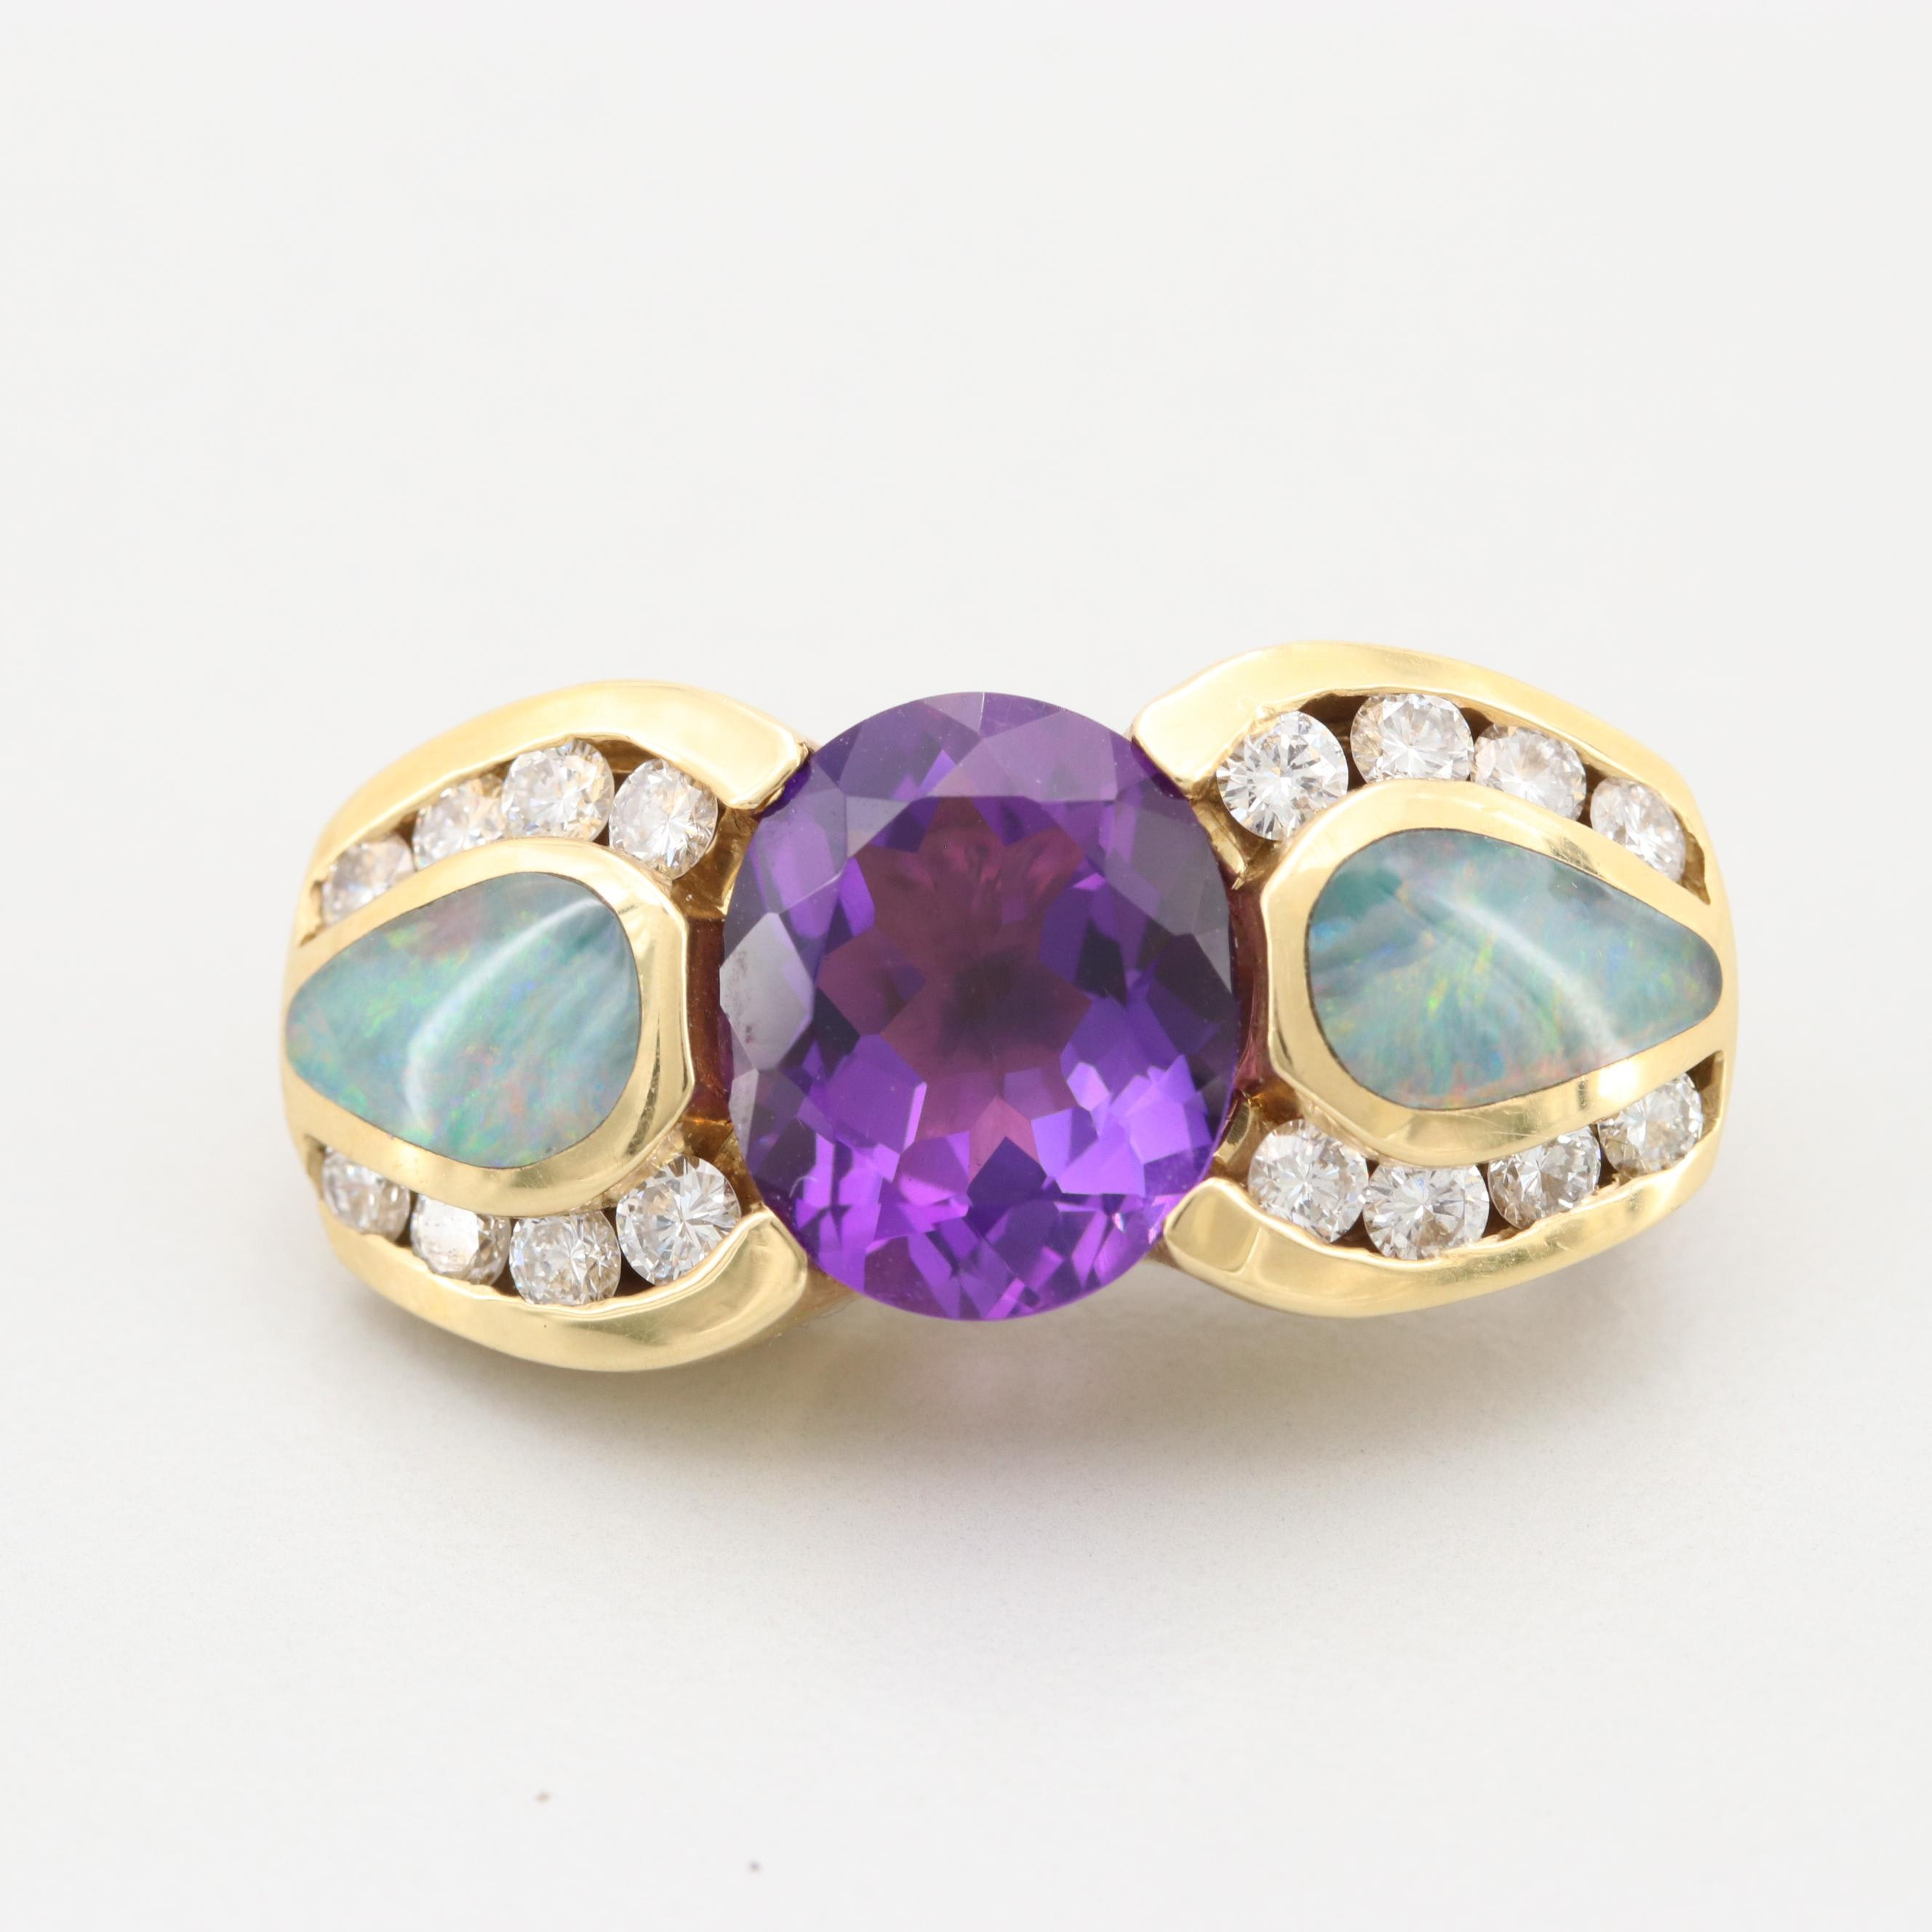 18K Yellow Gold Diamond Amethyst and Opal Brooch